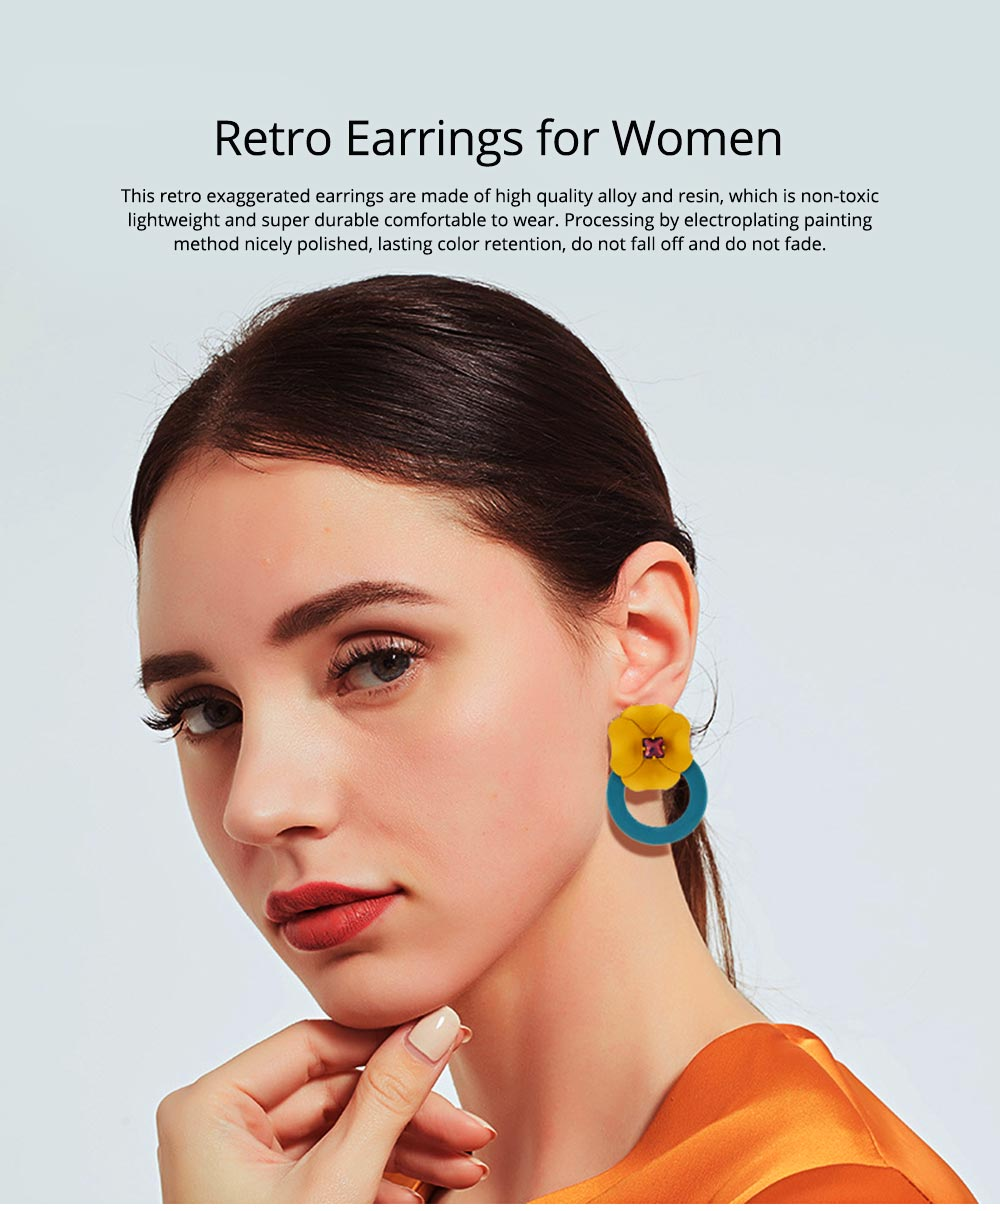 Retro Earrings for Women Flower Ear Jacket Zinc Alloy Stud Round Hoop Statement Earrings Gifts for Women 0